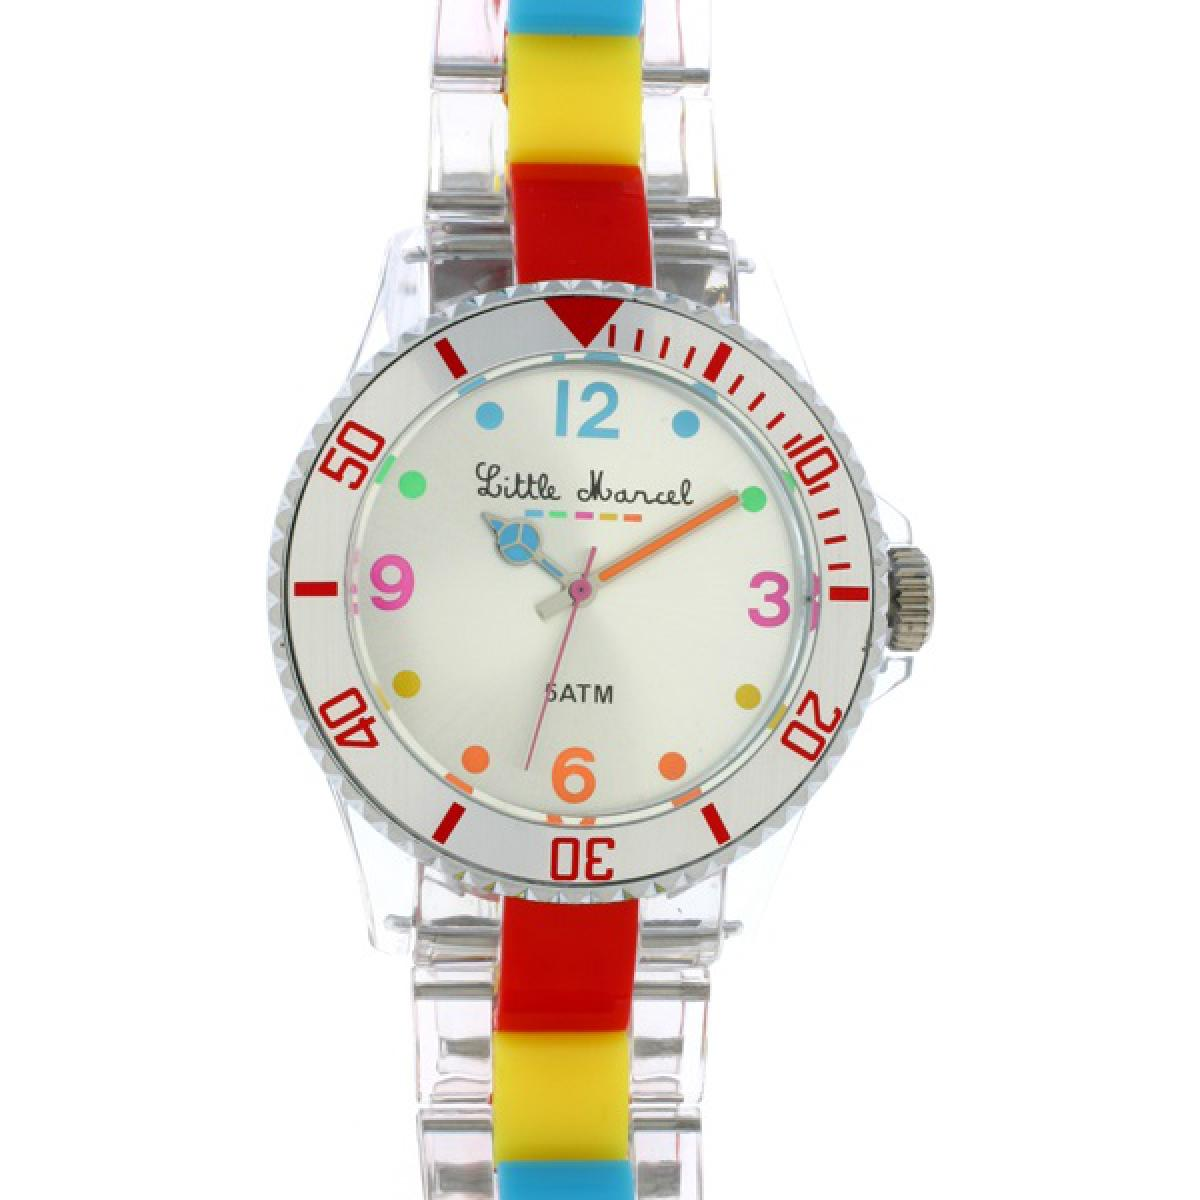 Montre Little Marcel LM10TRR - Montre Multicolore Transparente Femme